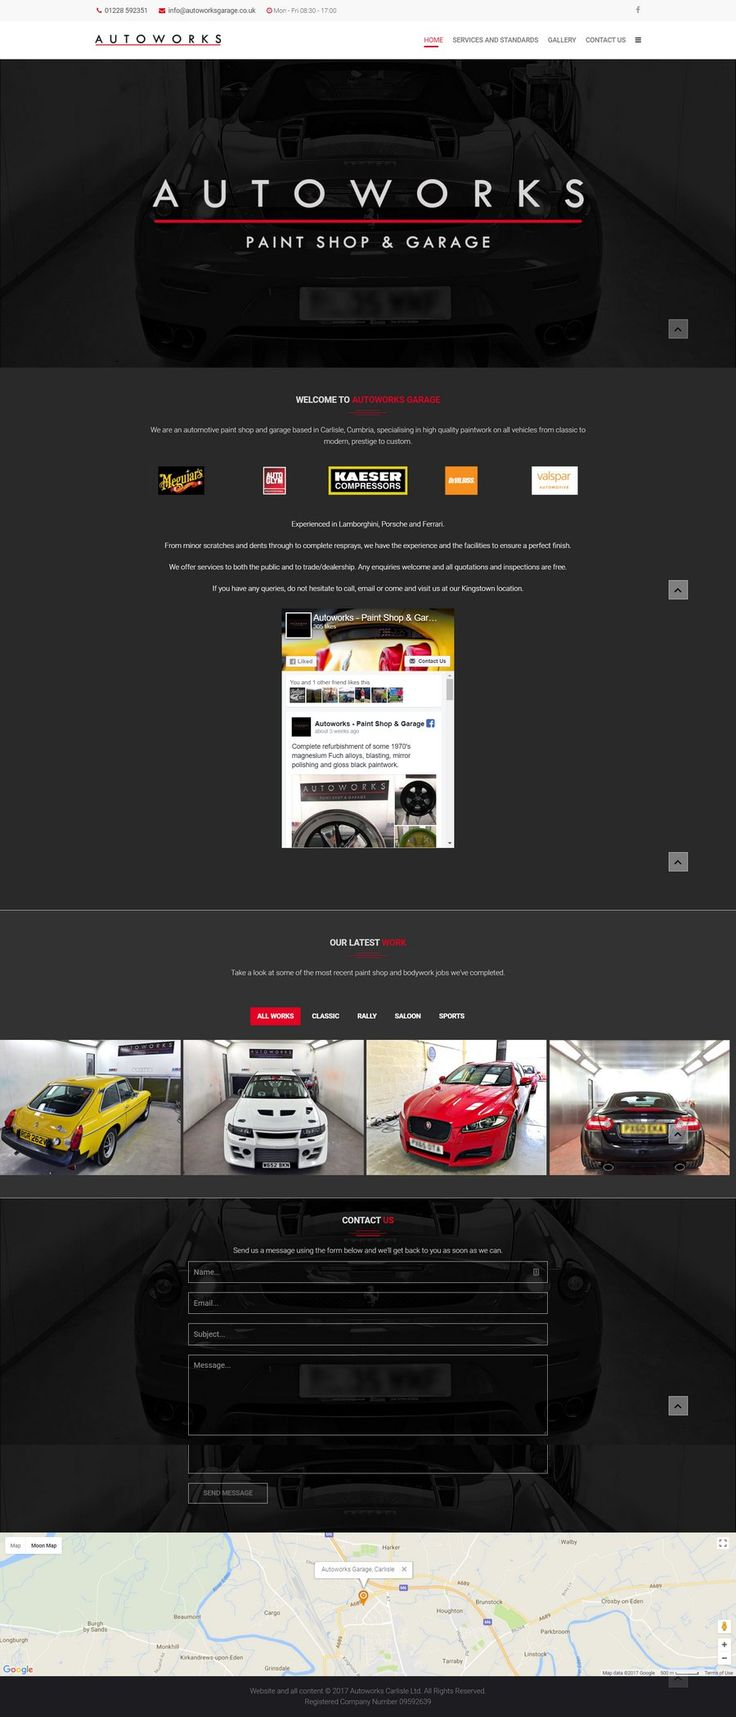 A highly stylised website design for Autoworks Garage, prestige bodywork and car repairs in Carlisle, Cumbria